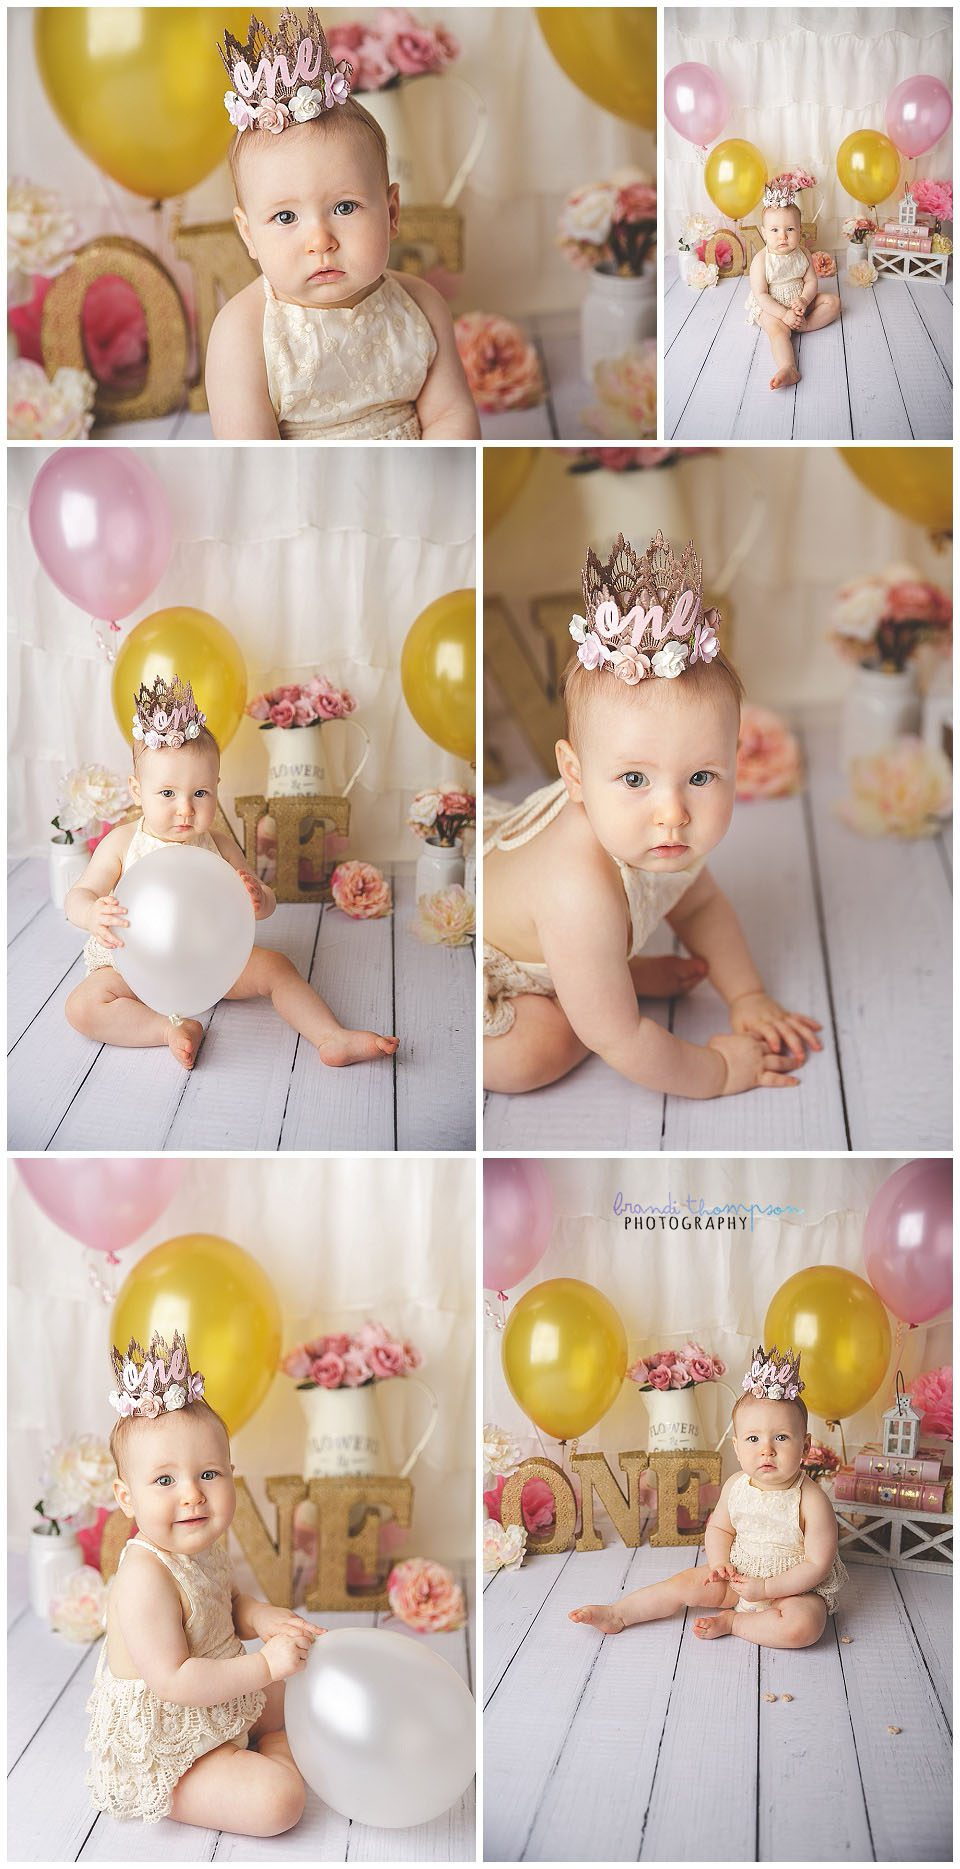 pink and gold cake smash theme with one year old baby girl in plano studio